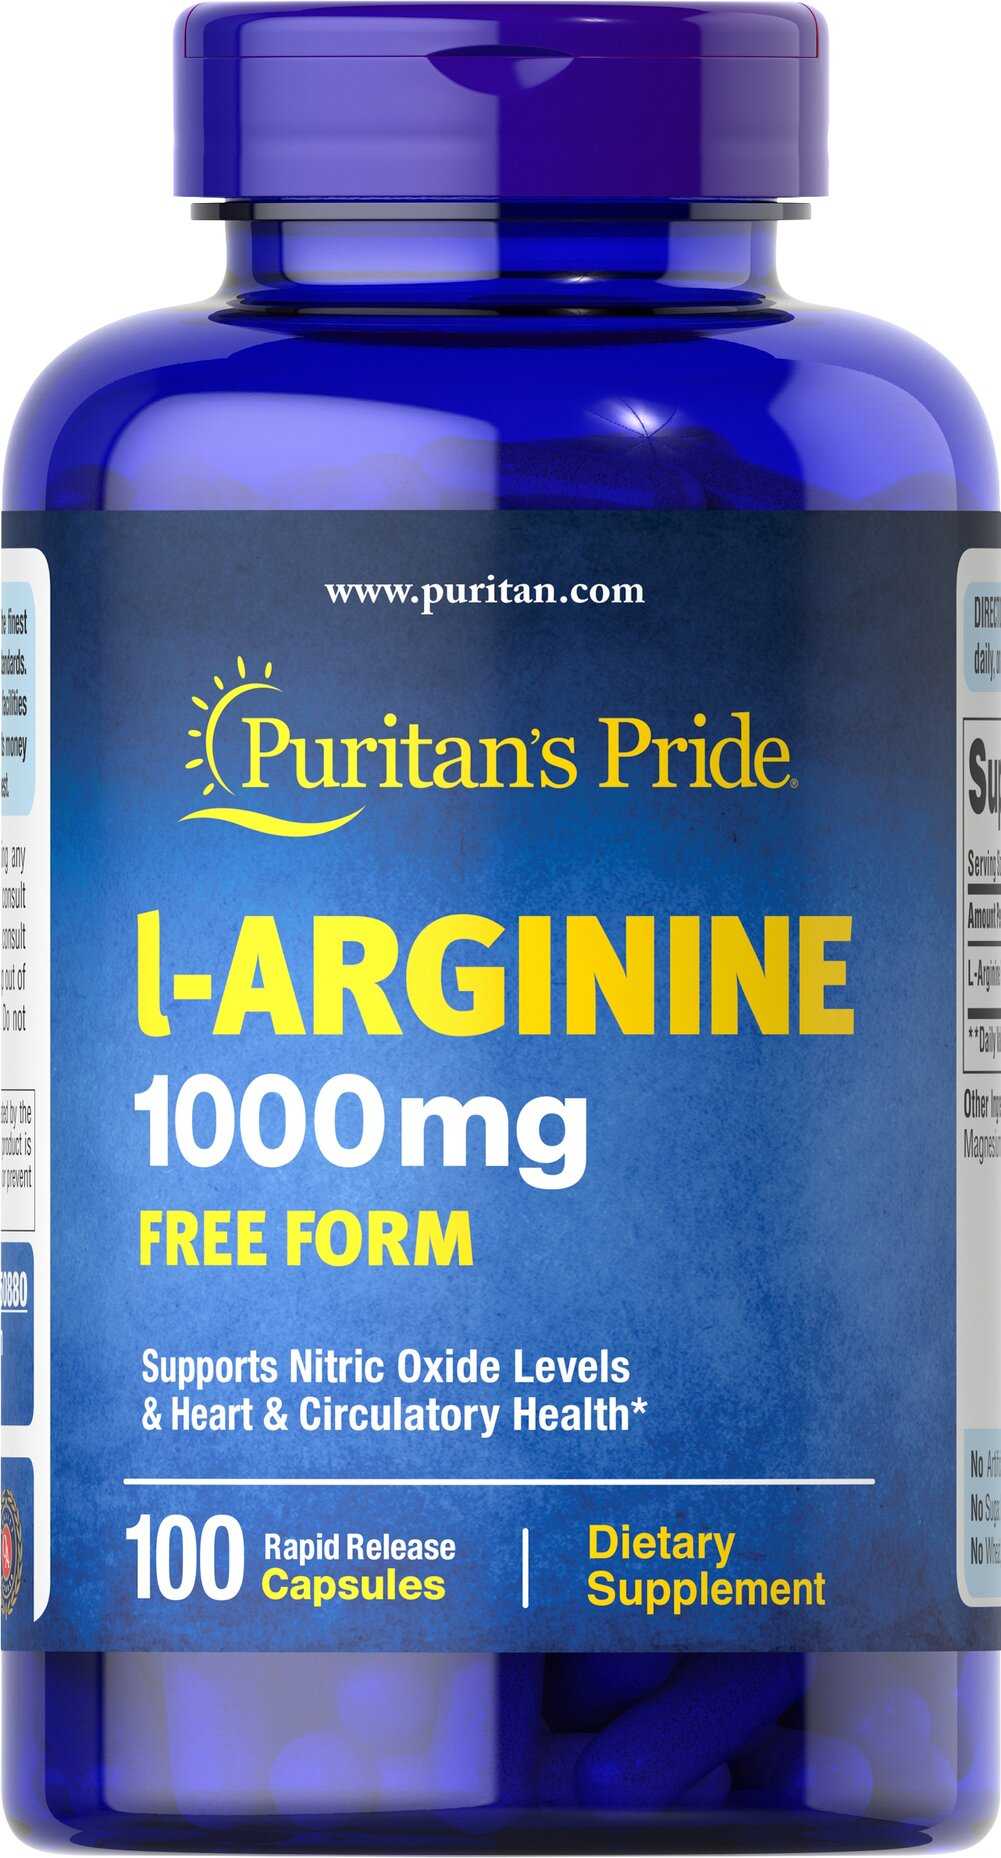 L-Arginine 1000 mg <p>Arginine is one of 20 amino acids, the building blocks of protein.** Arginine can serve as a source of energy, and is involved in various pathways throughout the body.** Arginine supports the effect of exercise and is one of the most important amino acids involved in immune function.** Adults can take one caplet daily. </p> 100 Capsules 1000 mg $19.99